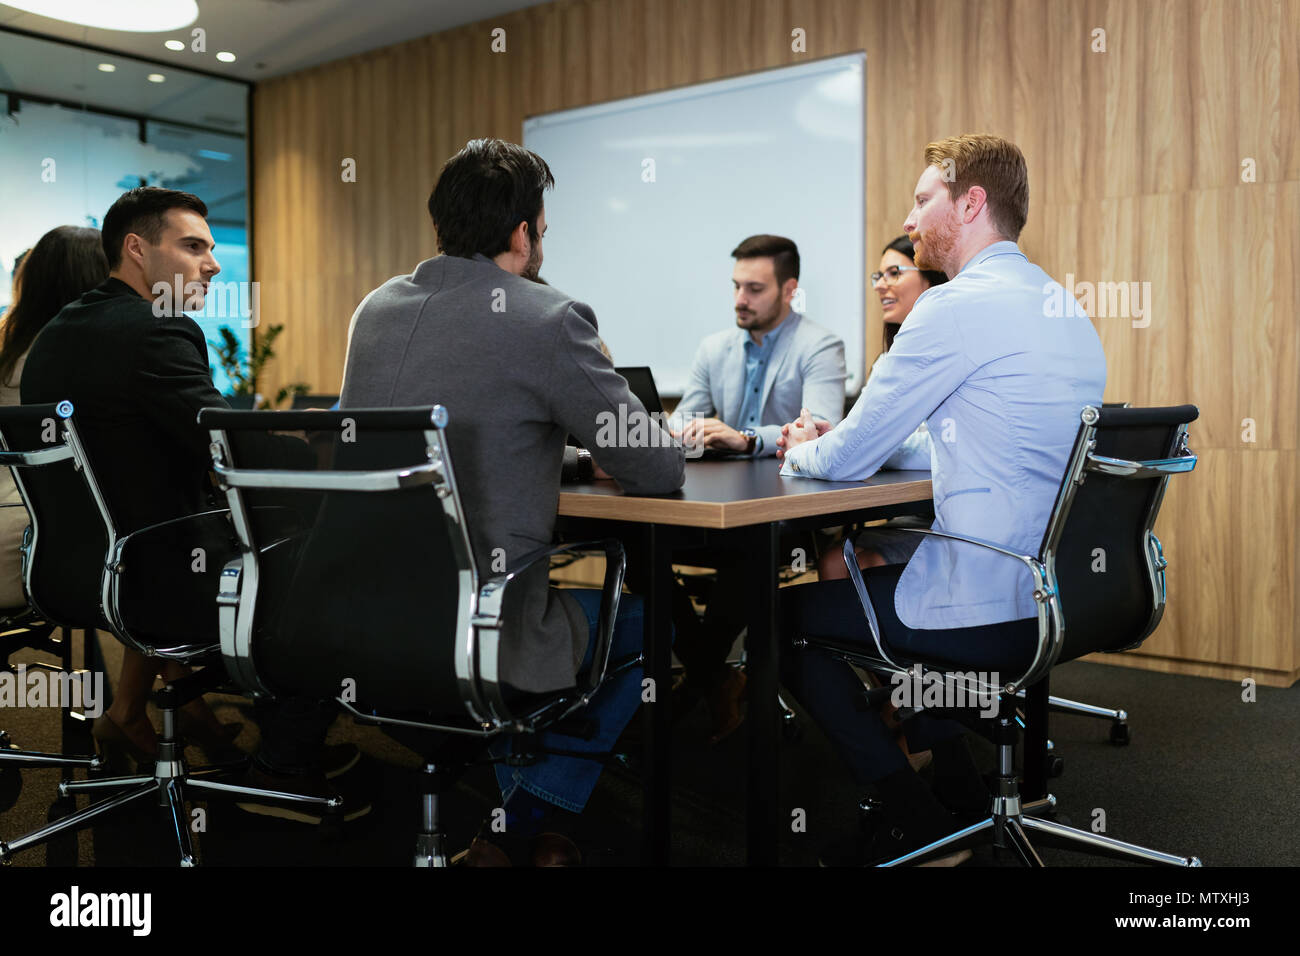 Picture of business meeting in conference room - Stock Image